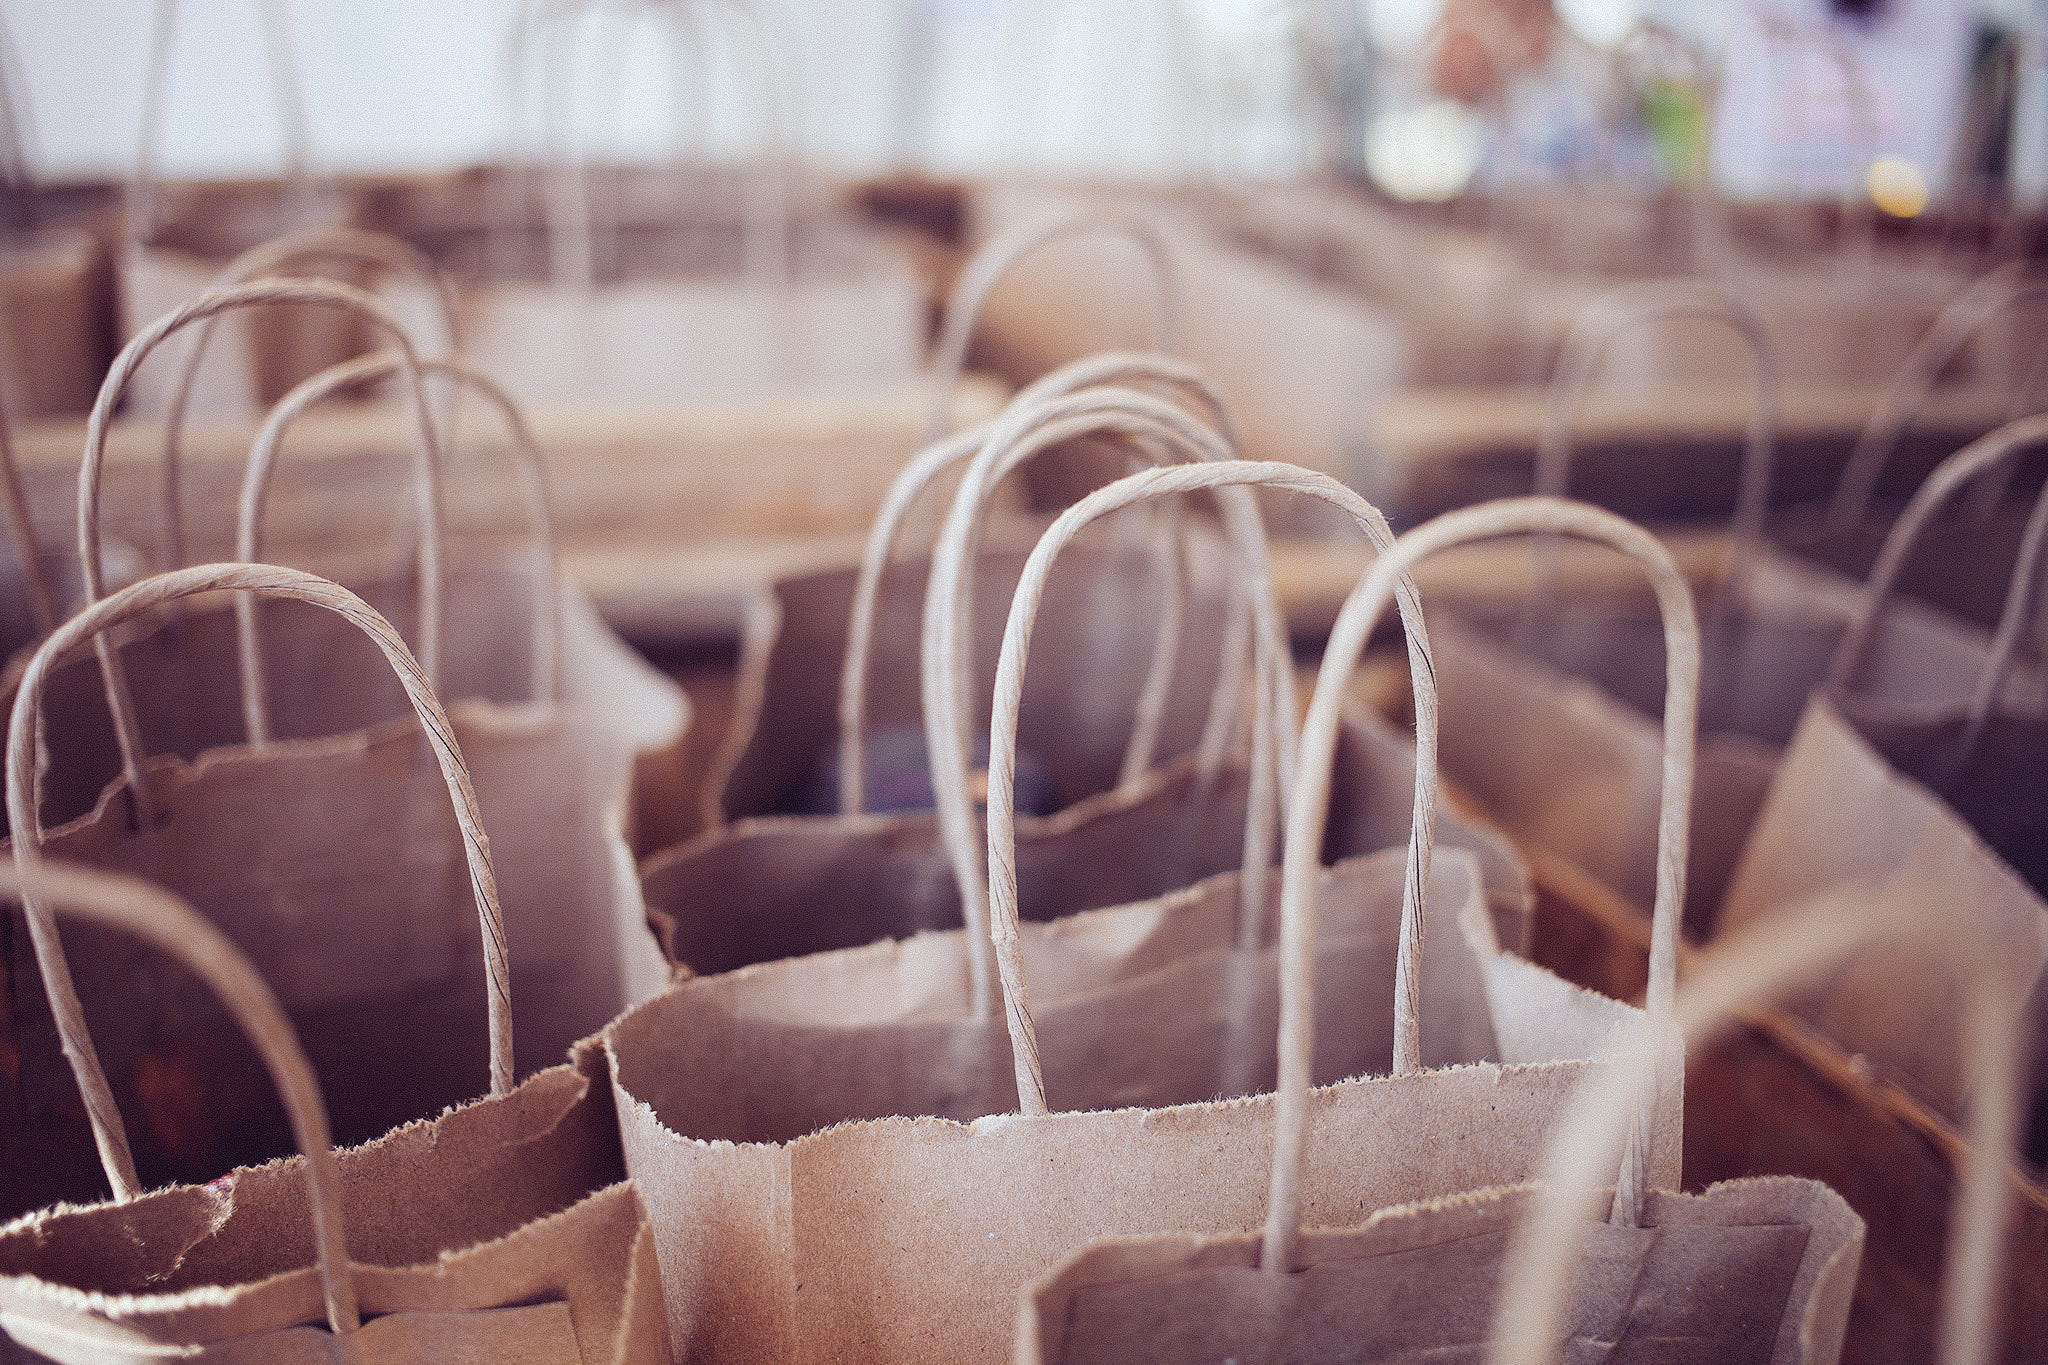 Photograph Bags by Jarques Pretorius on 500px